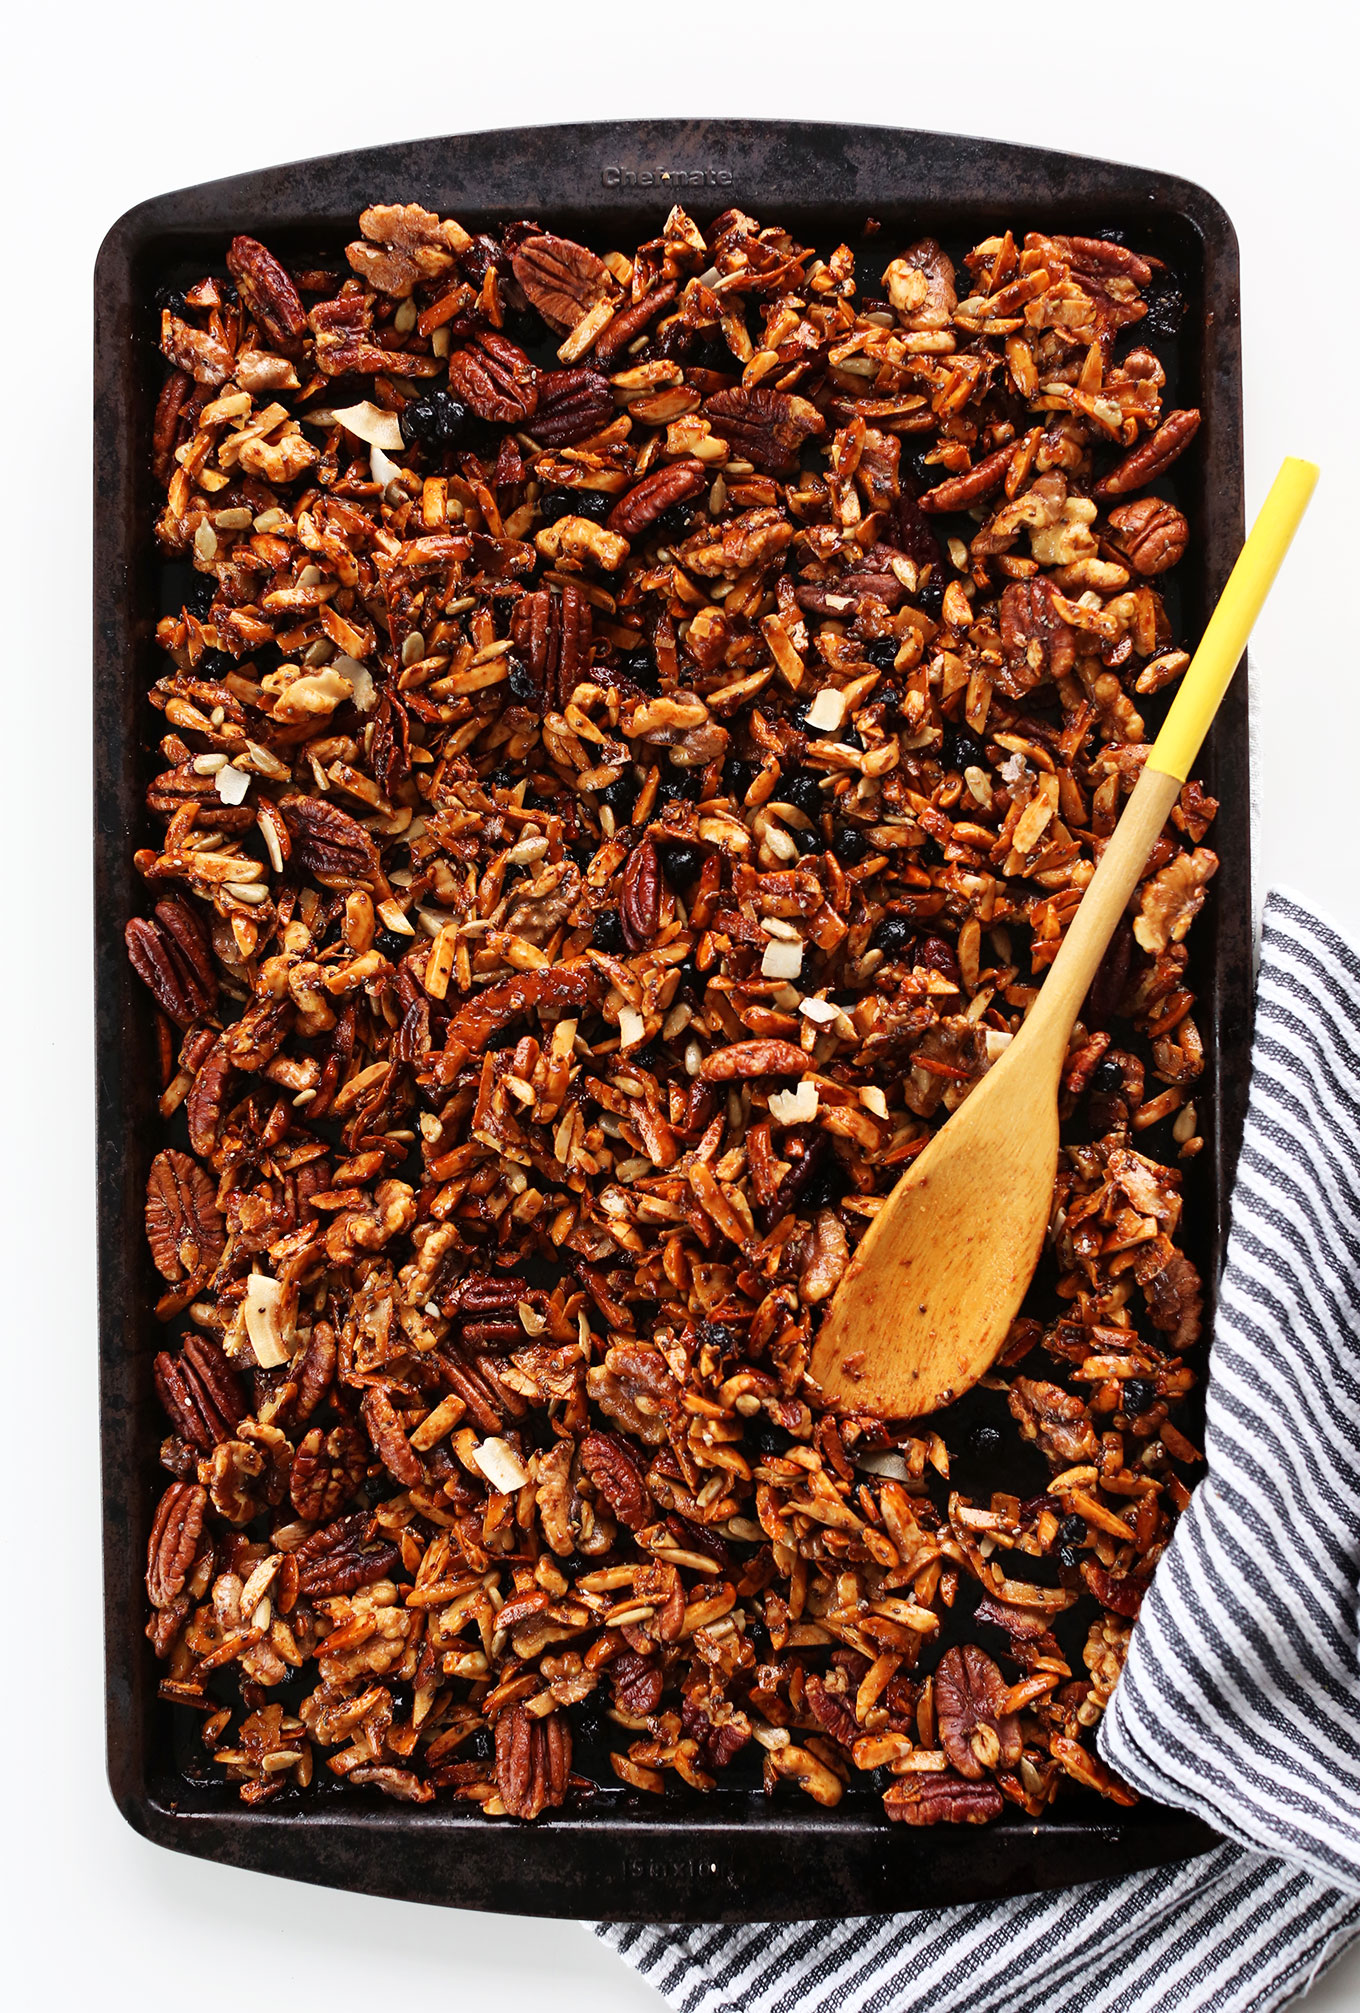 Baking sheet filled with a batch of our simple homemade Grain-Free Granola